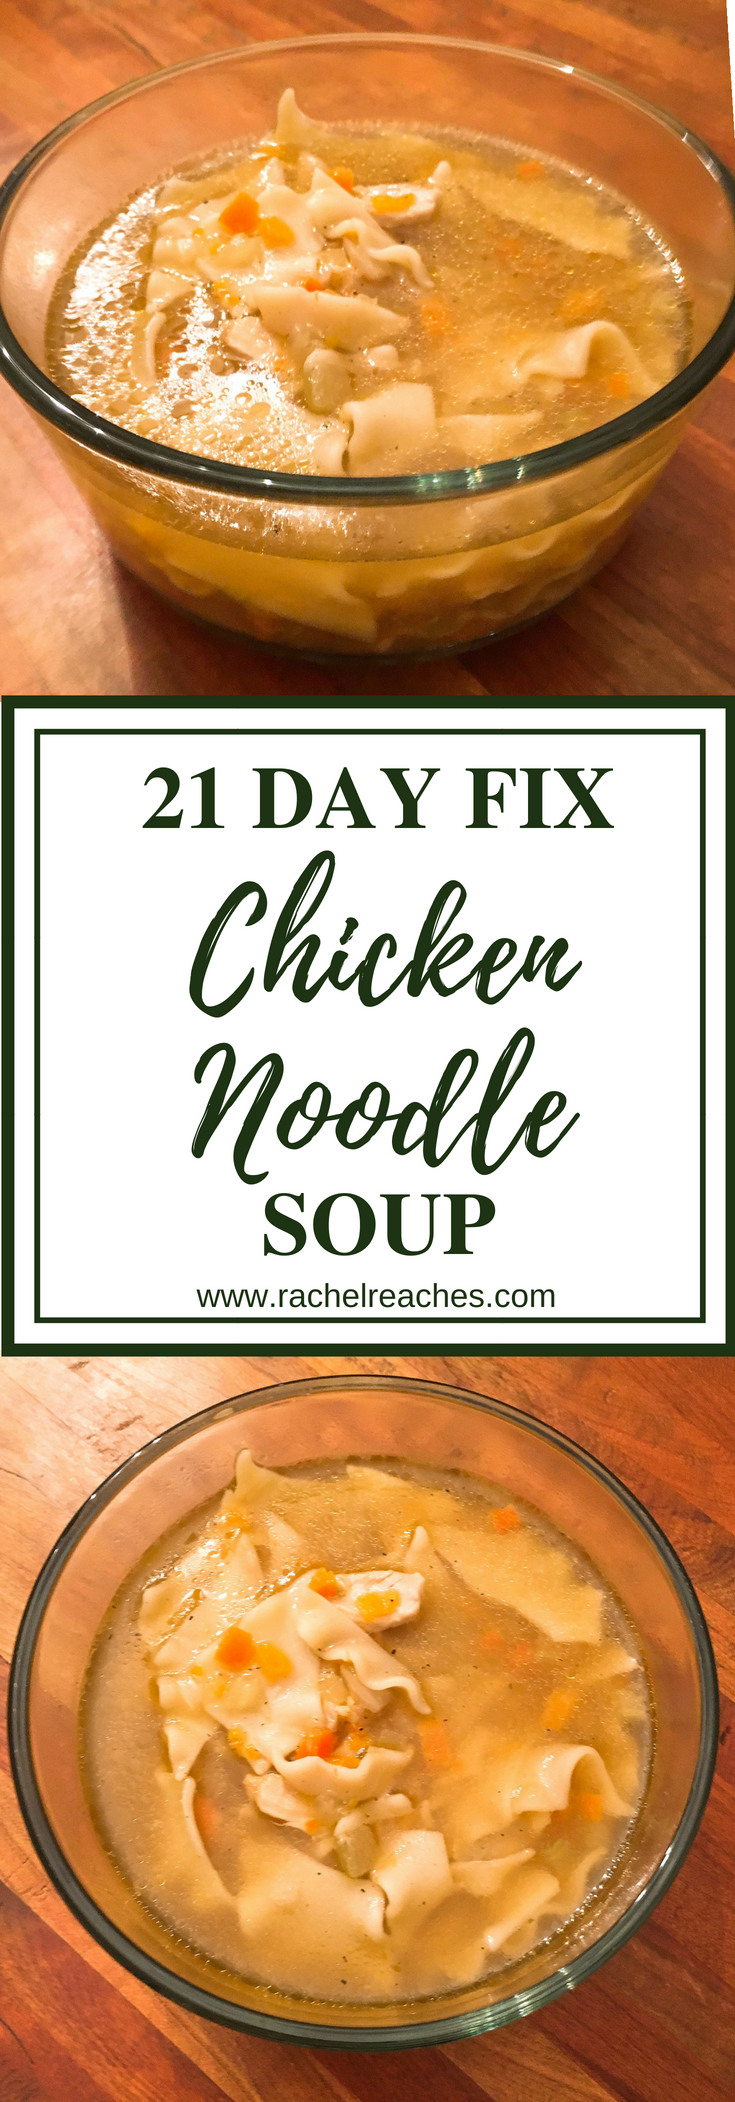 Instant Pot Chicken Noodle Soup Pin - 21 Day Fix.png